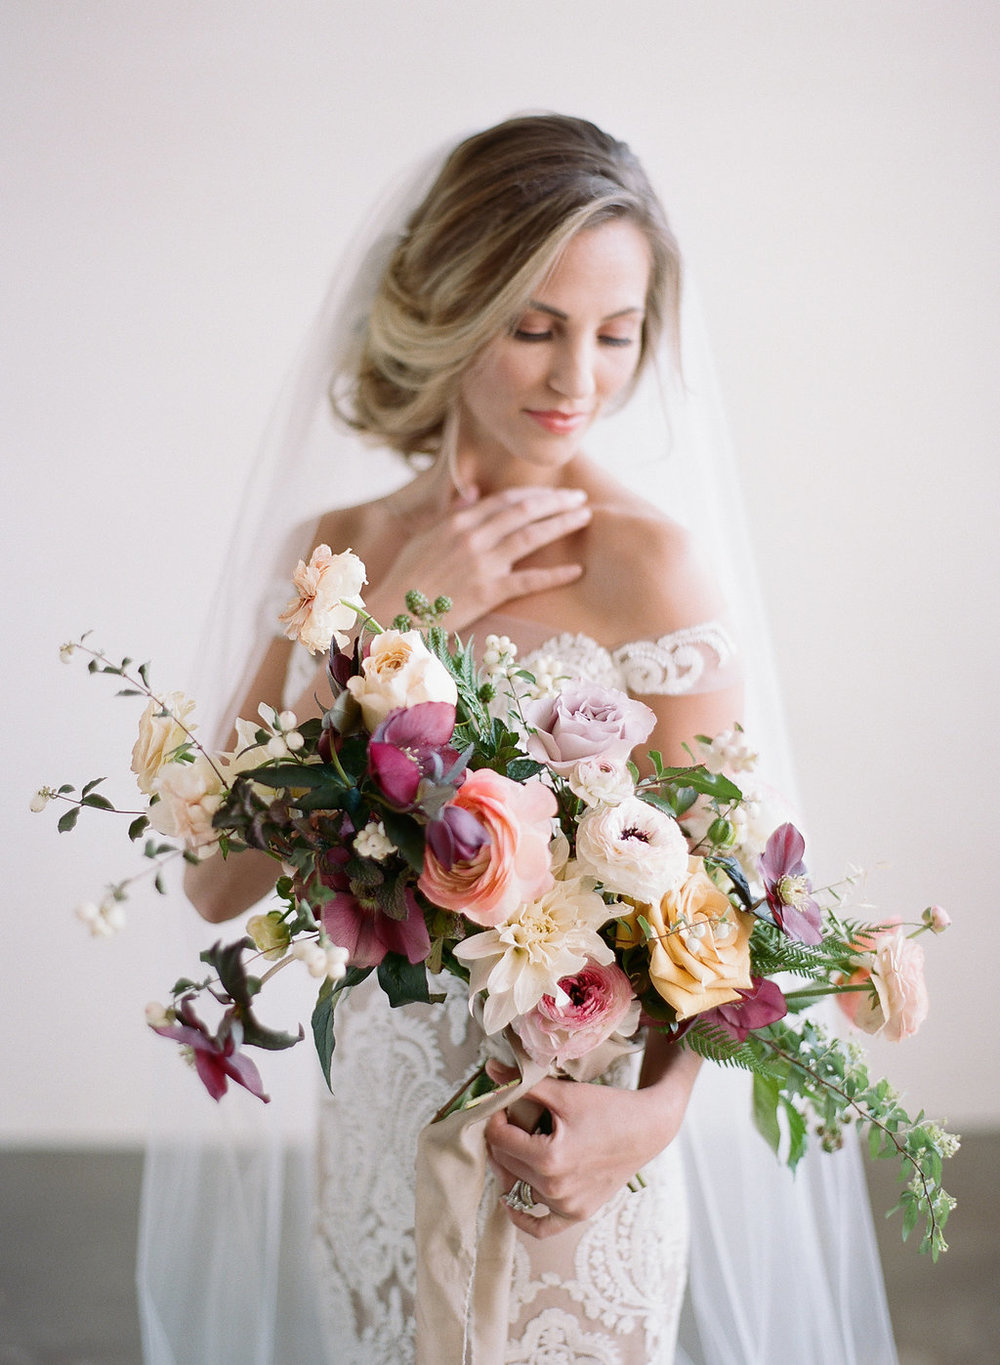 Bridal_Bouquet_Houston_Kelly_Hornberger.jpg